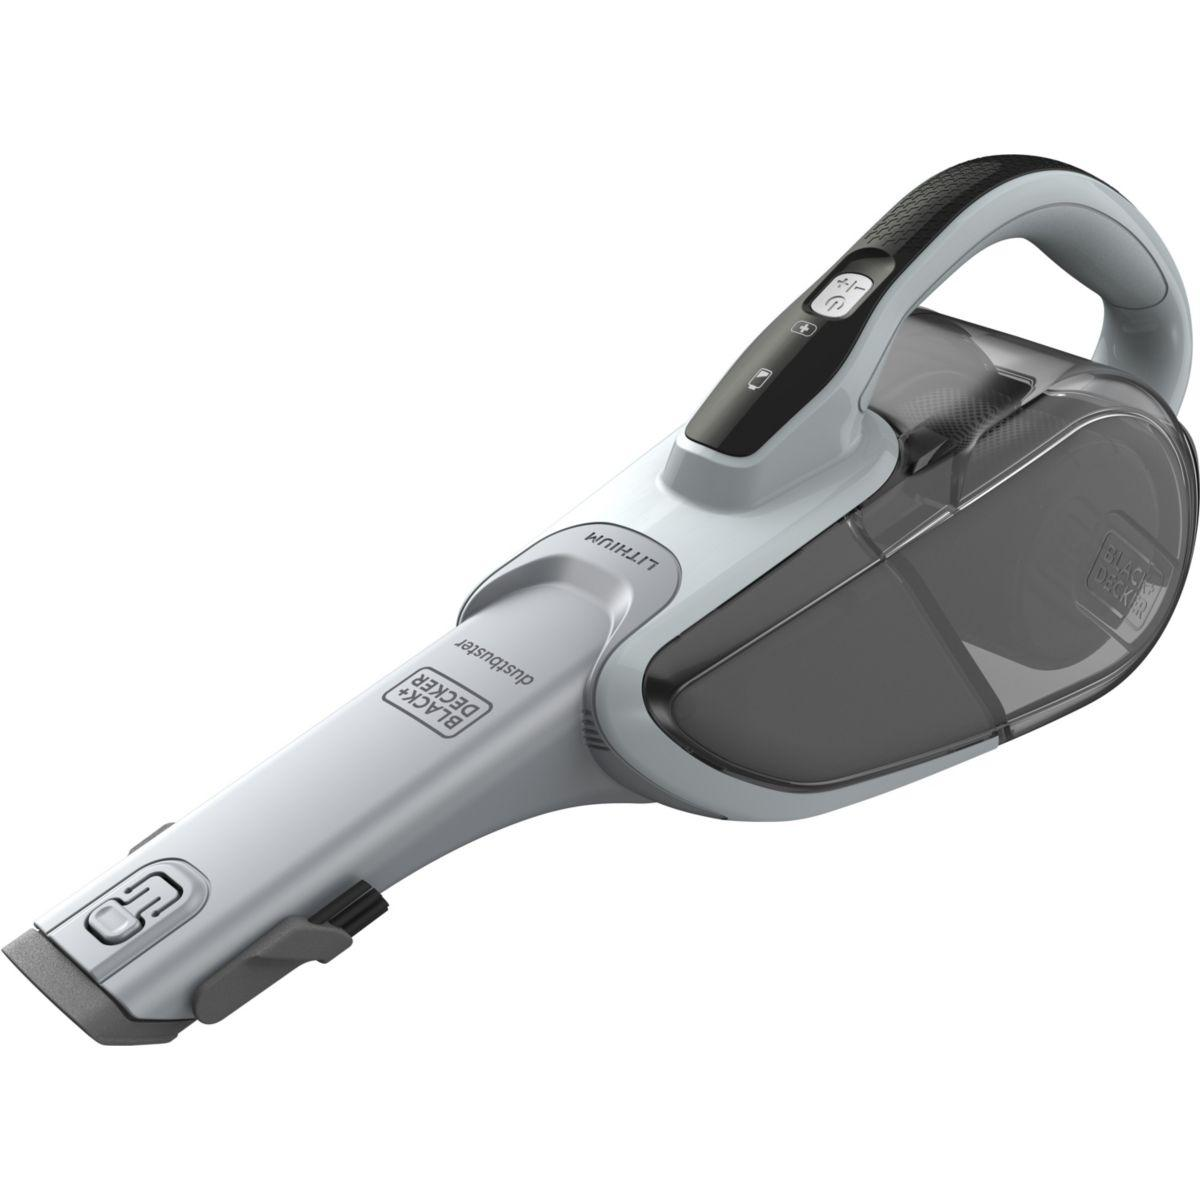 Aspirateur main black et decker dvj215j dustbuster lithium 7.2...